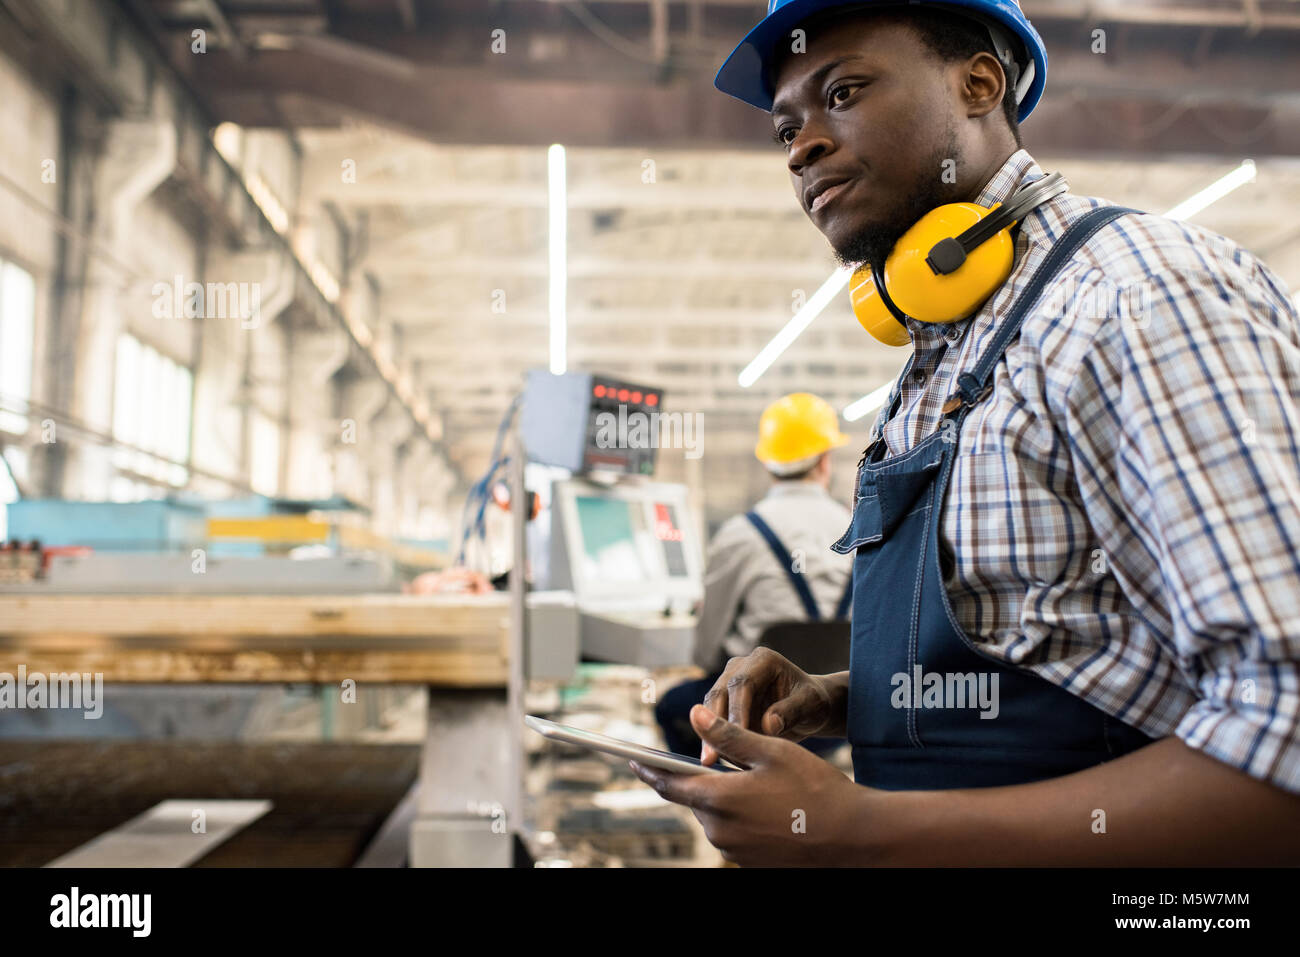 Concentrated African American worker wearing overall and hardhat operating machine with help of digital tablet, - Stock Image